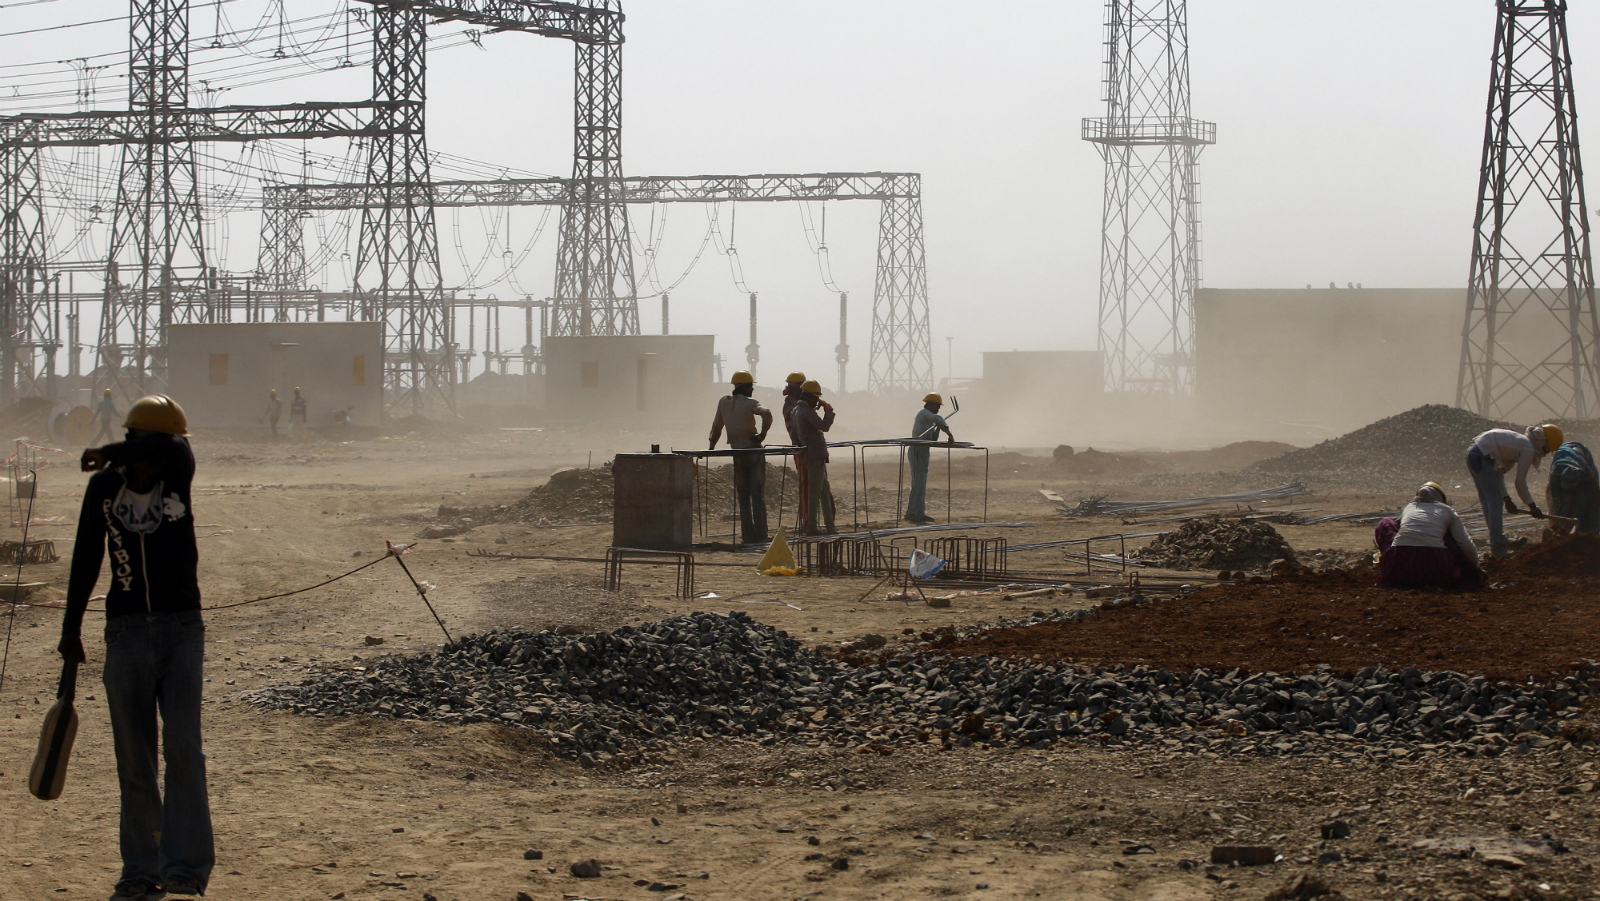 n this Feb. 24, 2015 file photo, a worker covers his face to avoid rising dust at a coal-fired power plant, partially financed by the Japan Bank for International Cooperation, under construction in Kudgi, India. Led by cutbacks in China and India, construction of new coal-fired power plants is falling worldwide, improving chances climate goals can be met despite earlier pessimism, three environmental groups said Wednesday, March 22, 2017. (File)